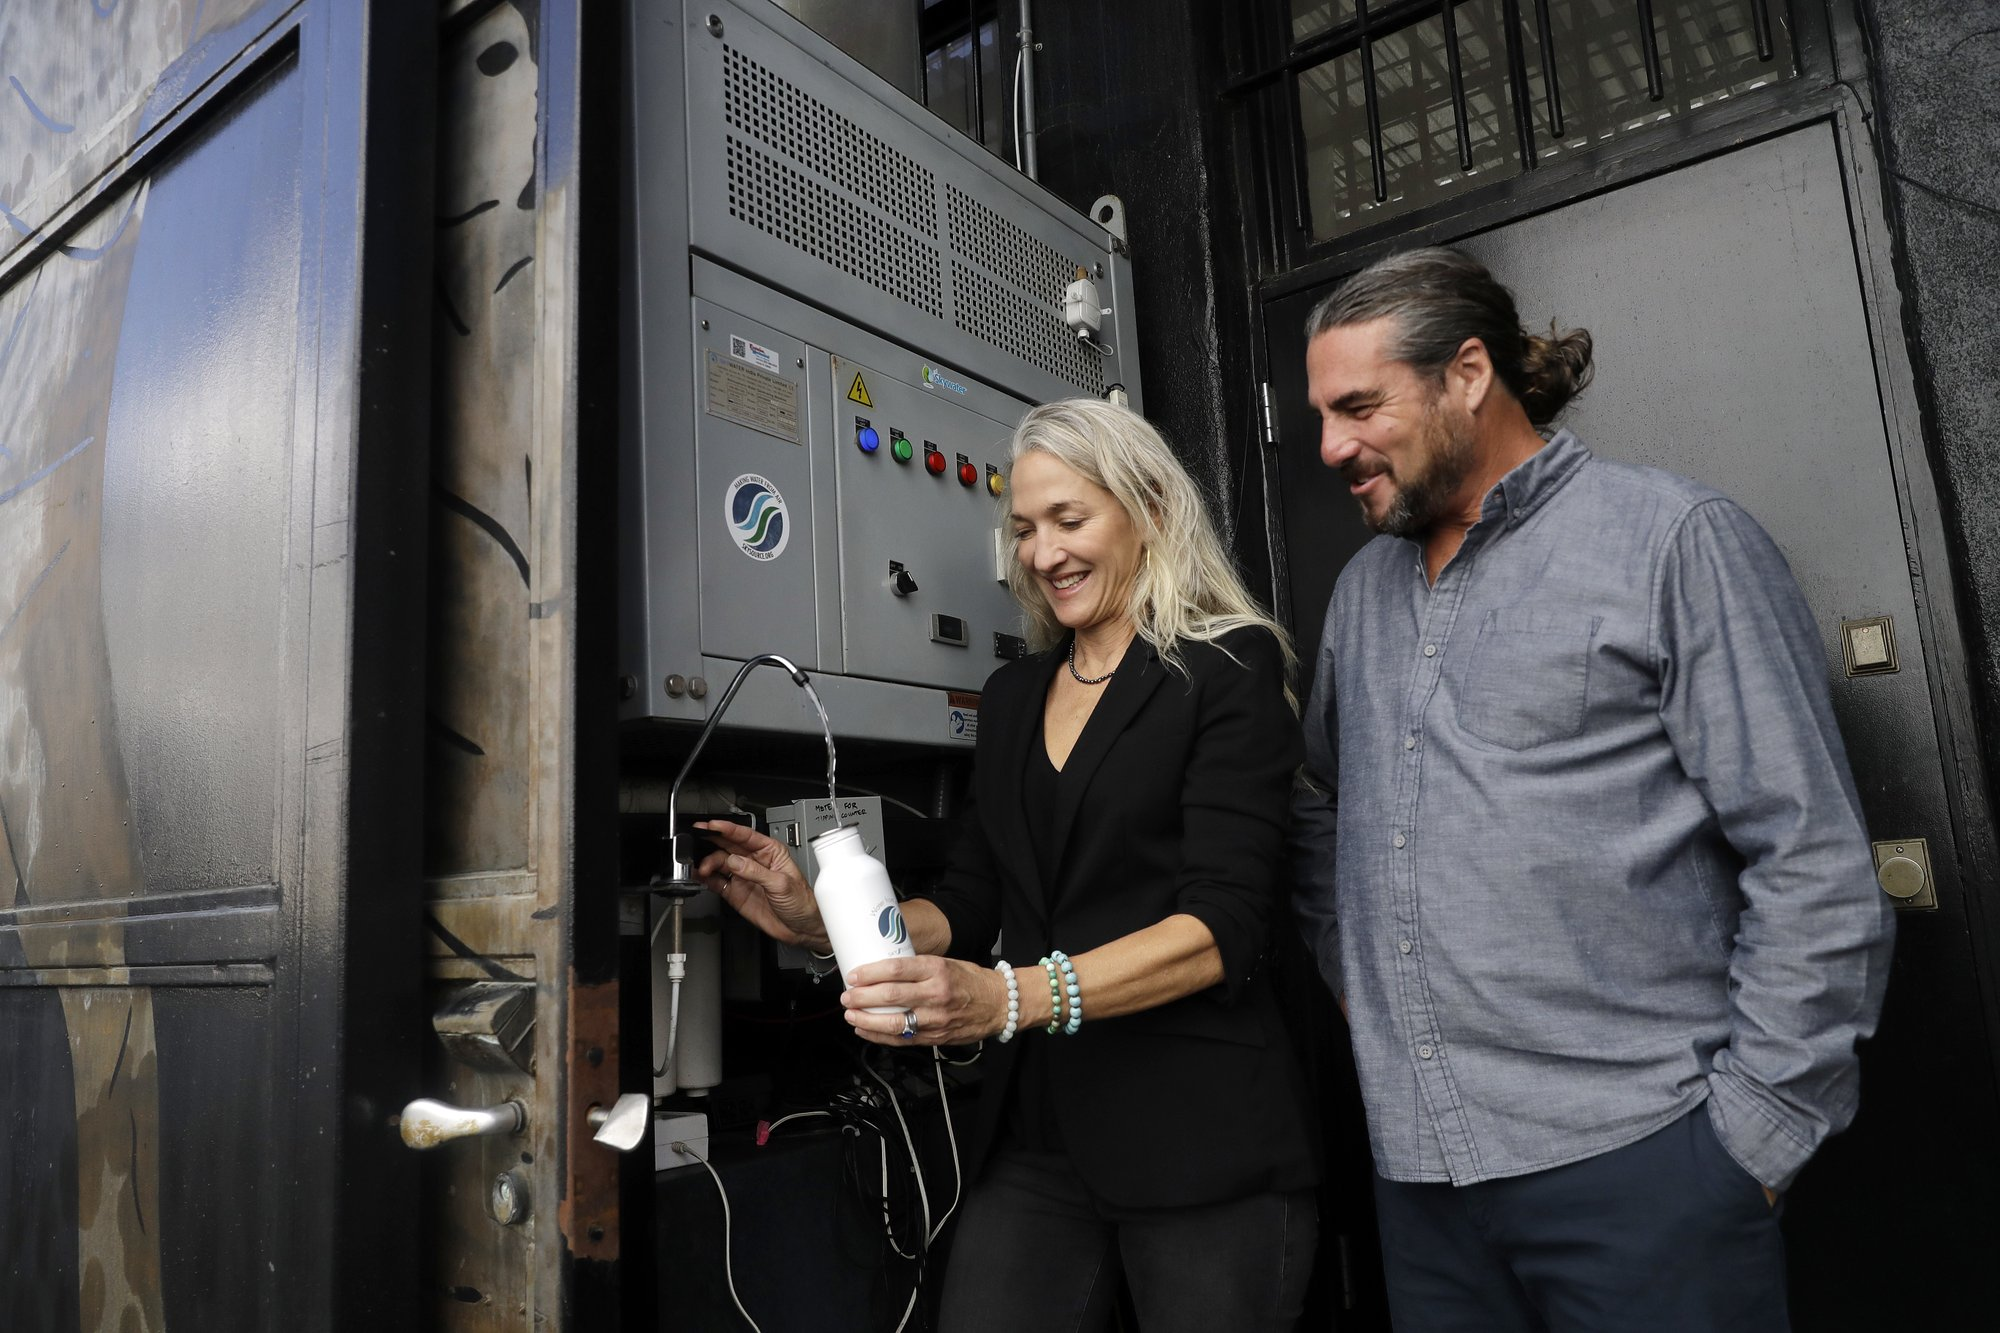 Water out of thin air: California couple's device wins $1.5M